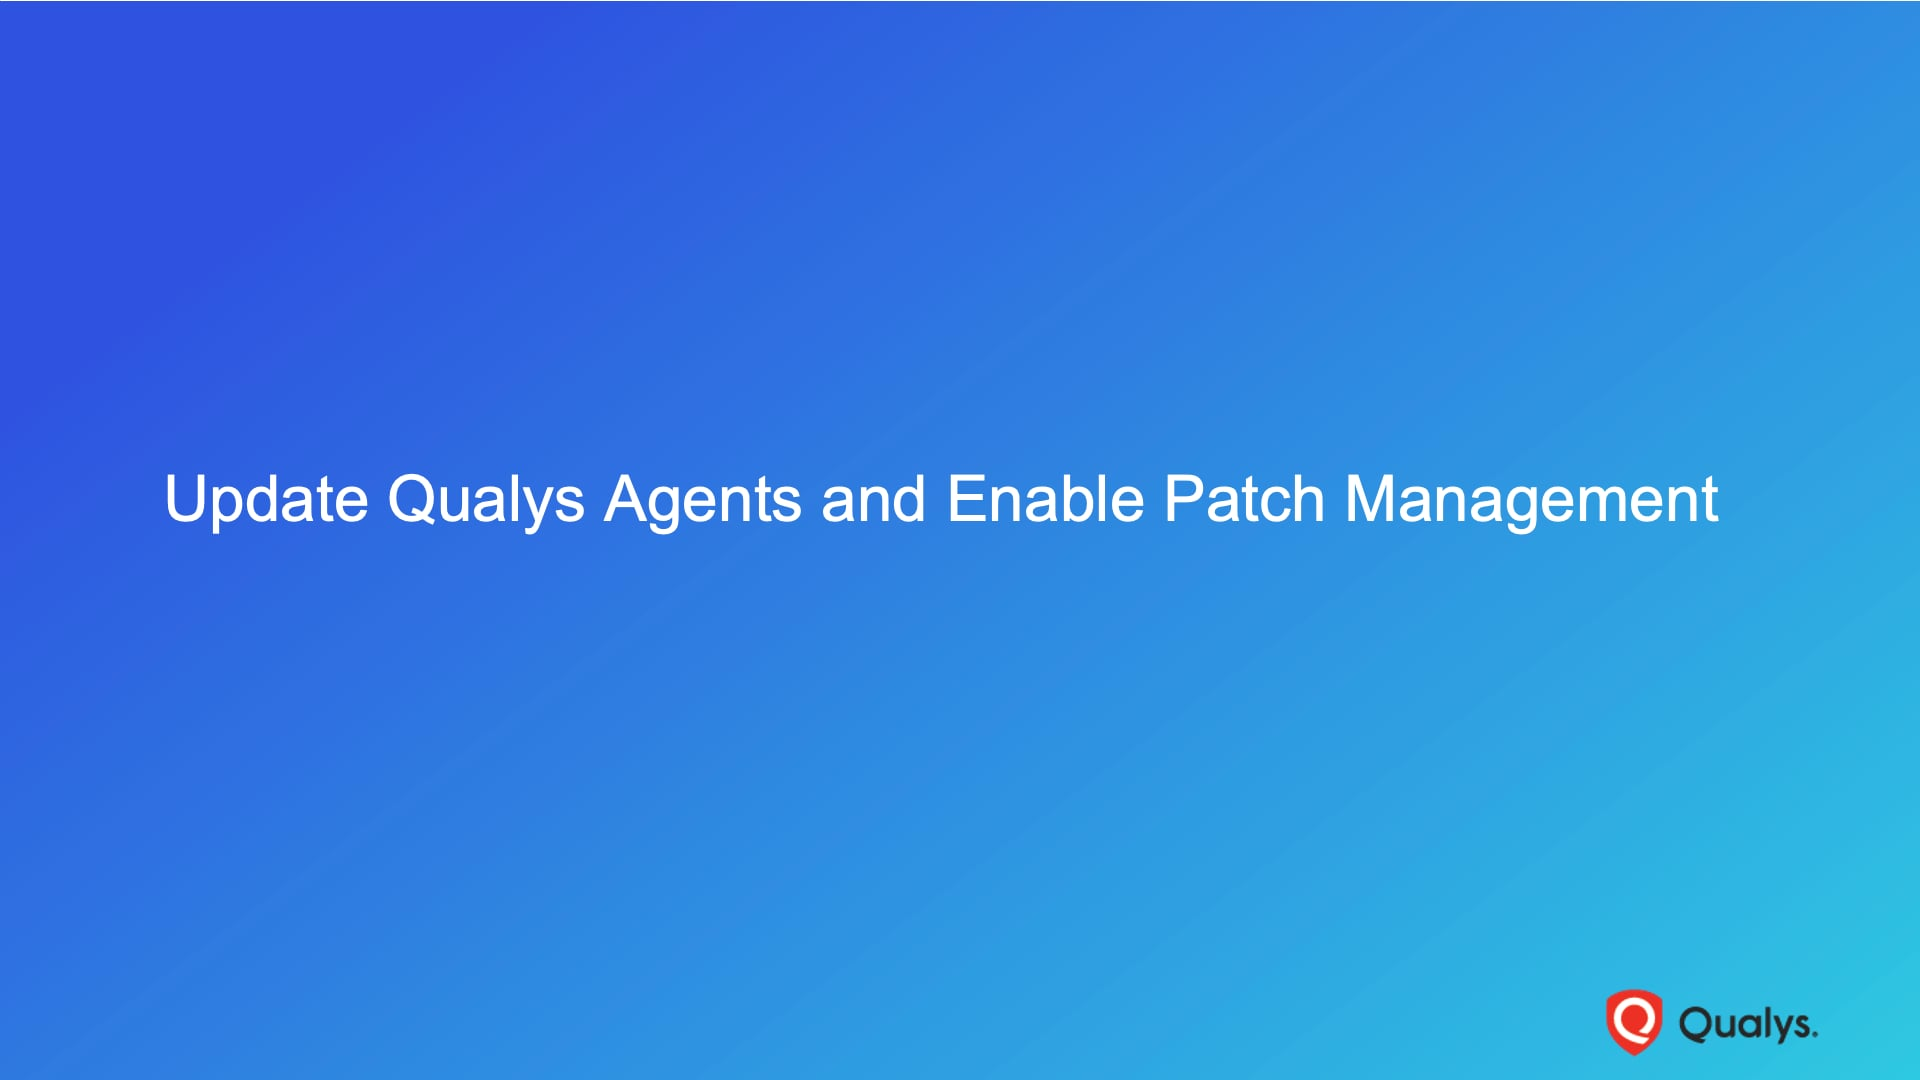 Update Qualys Agents and Enable Patch Management